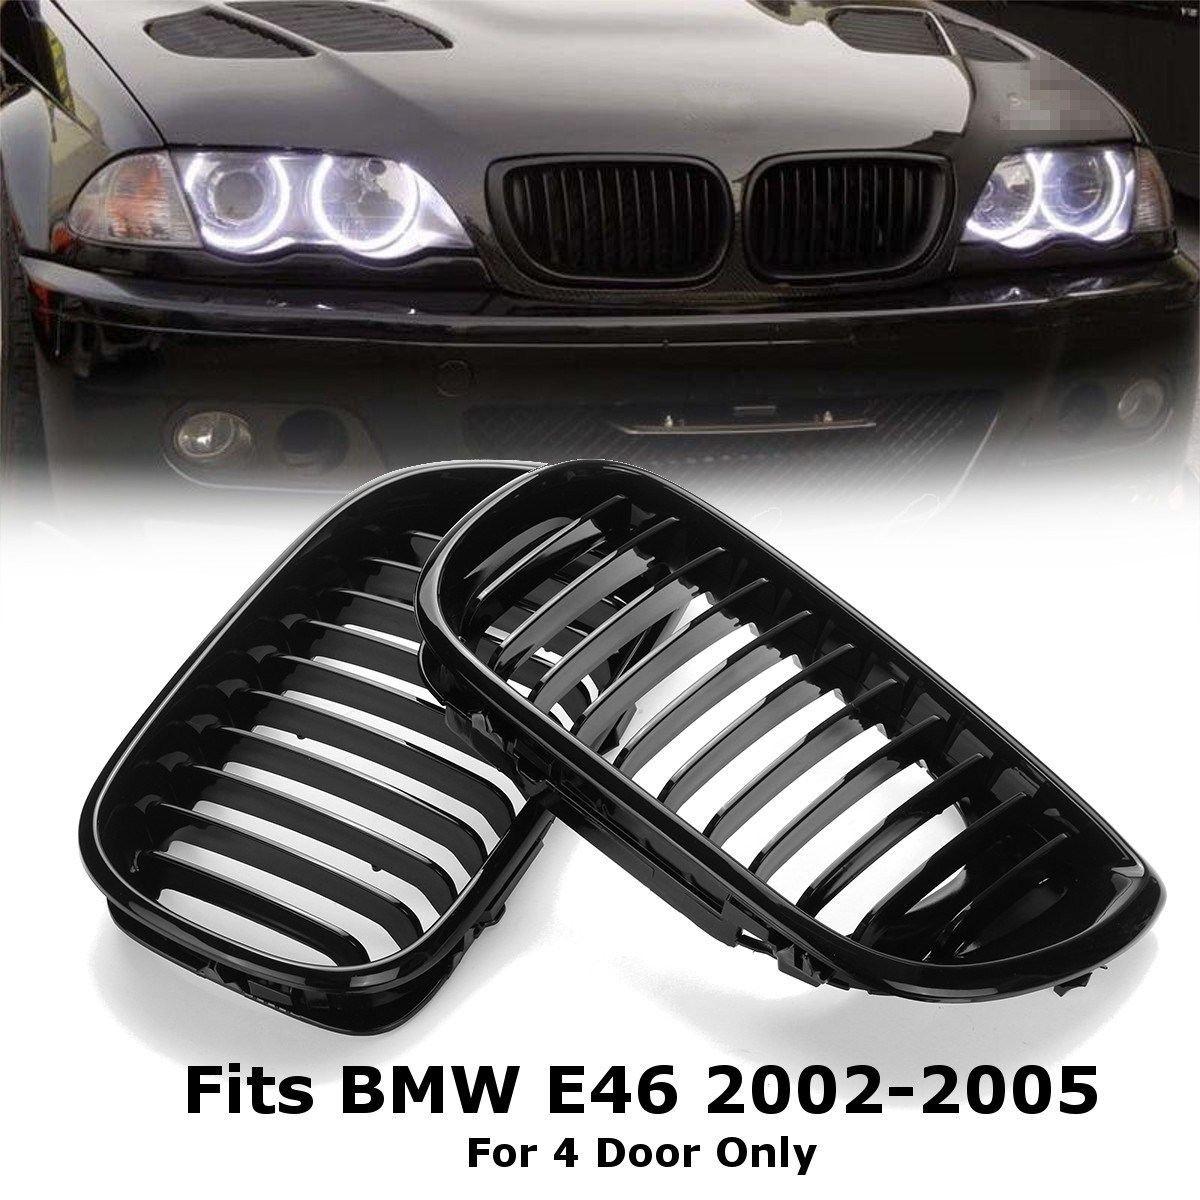 Fits for BMW E46 3er Saloon//Touring 2002-2005 Kidneys Grille Chrome New